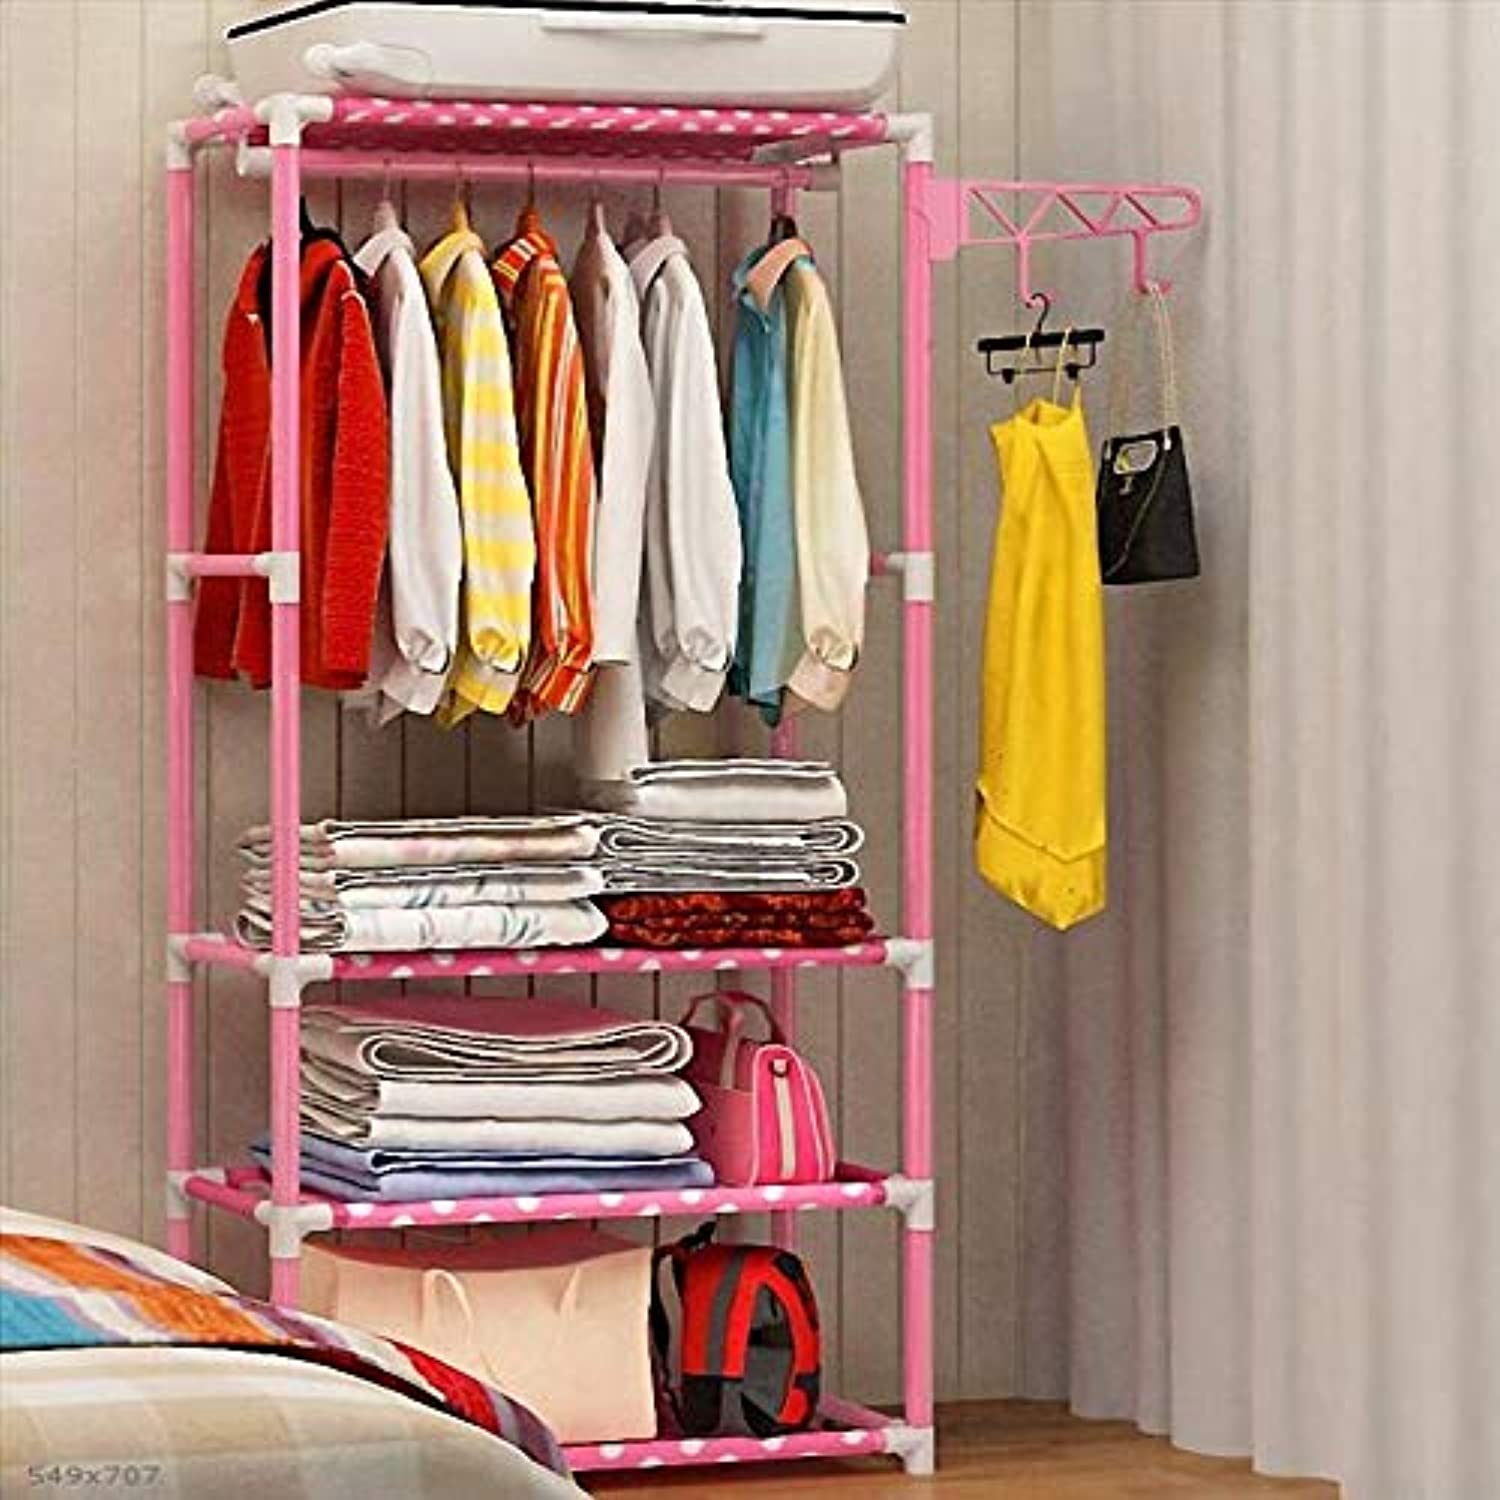 Coat Rack Wrought Iron Clothes Rack Floor Bedroom Foyer Hangers Fashion Creative Assembly Coat Rack Save Space (color   Pink, Size   35  55  175cm)